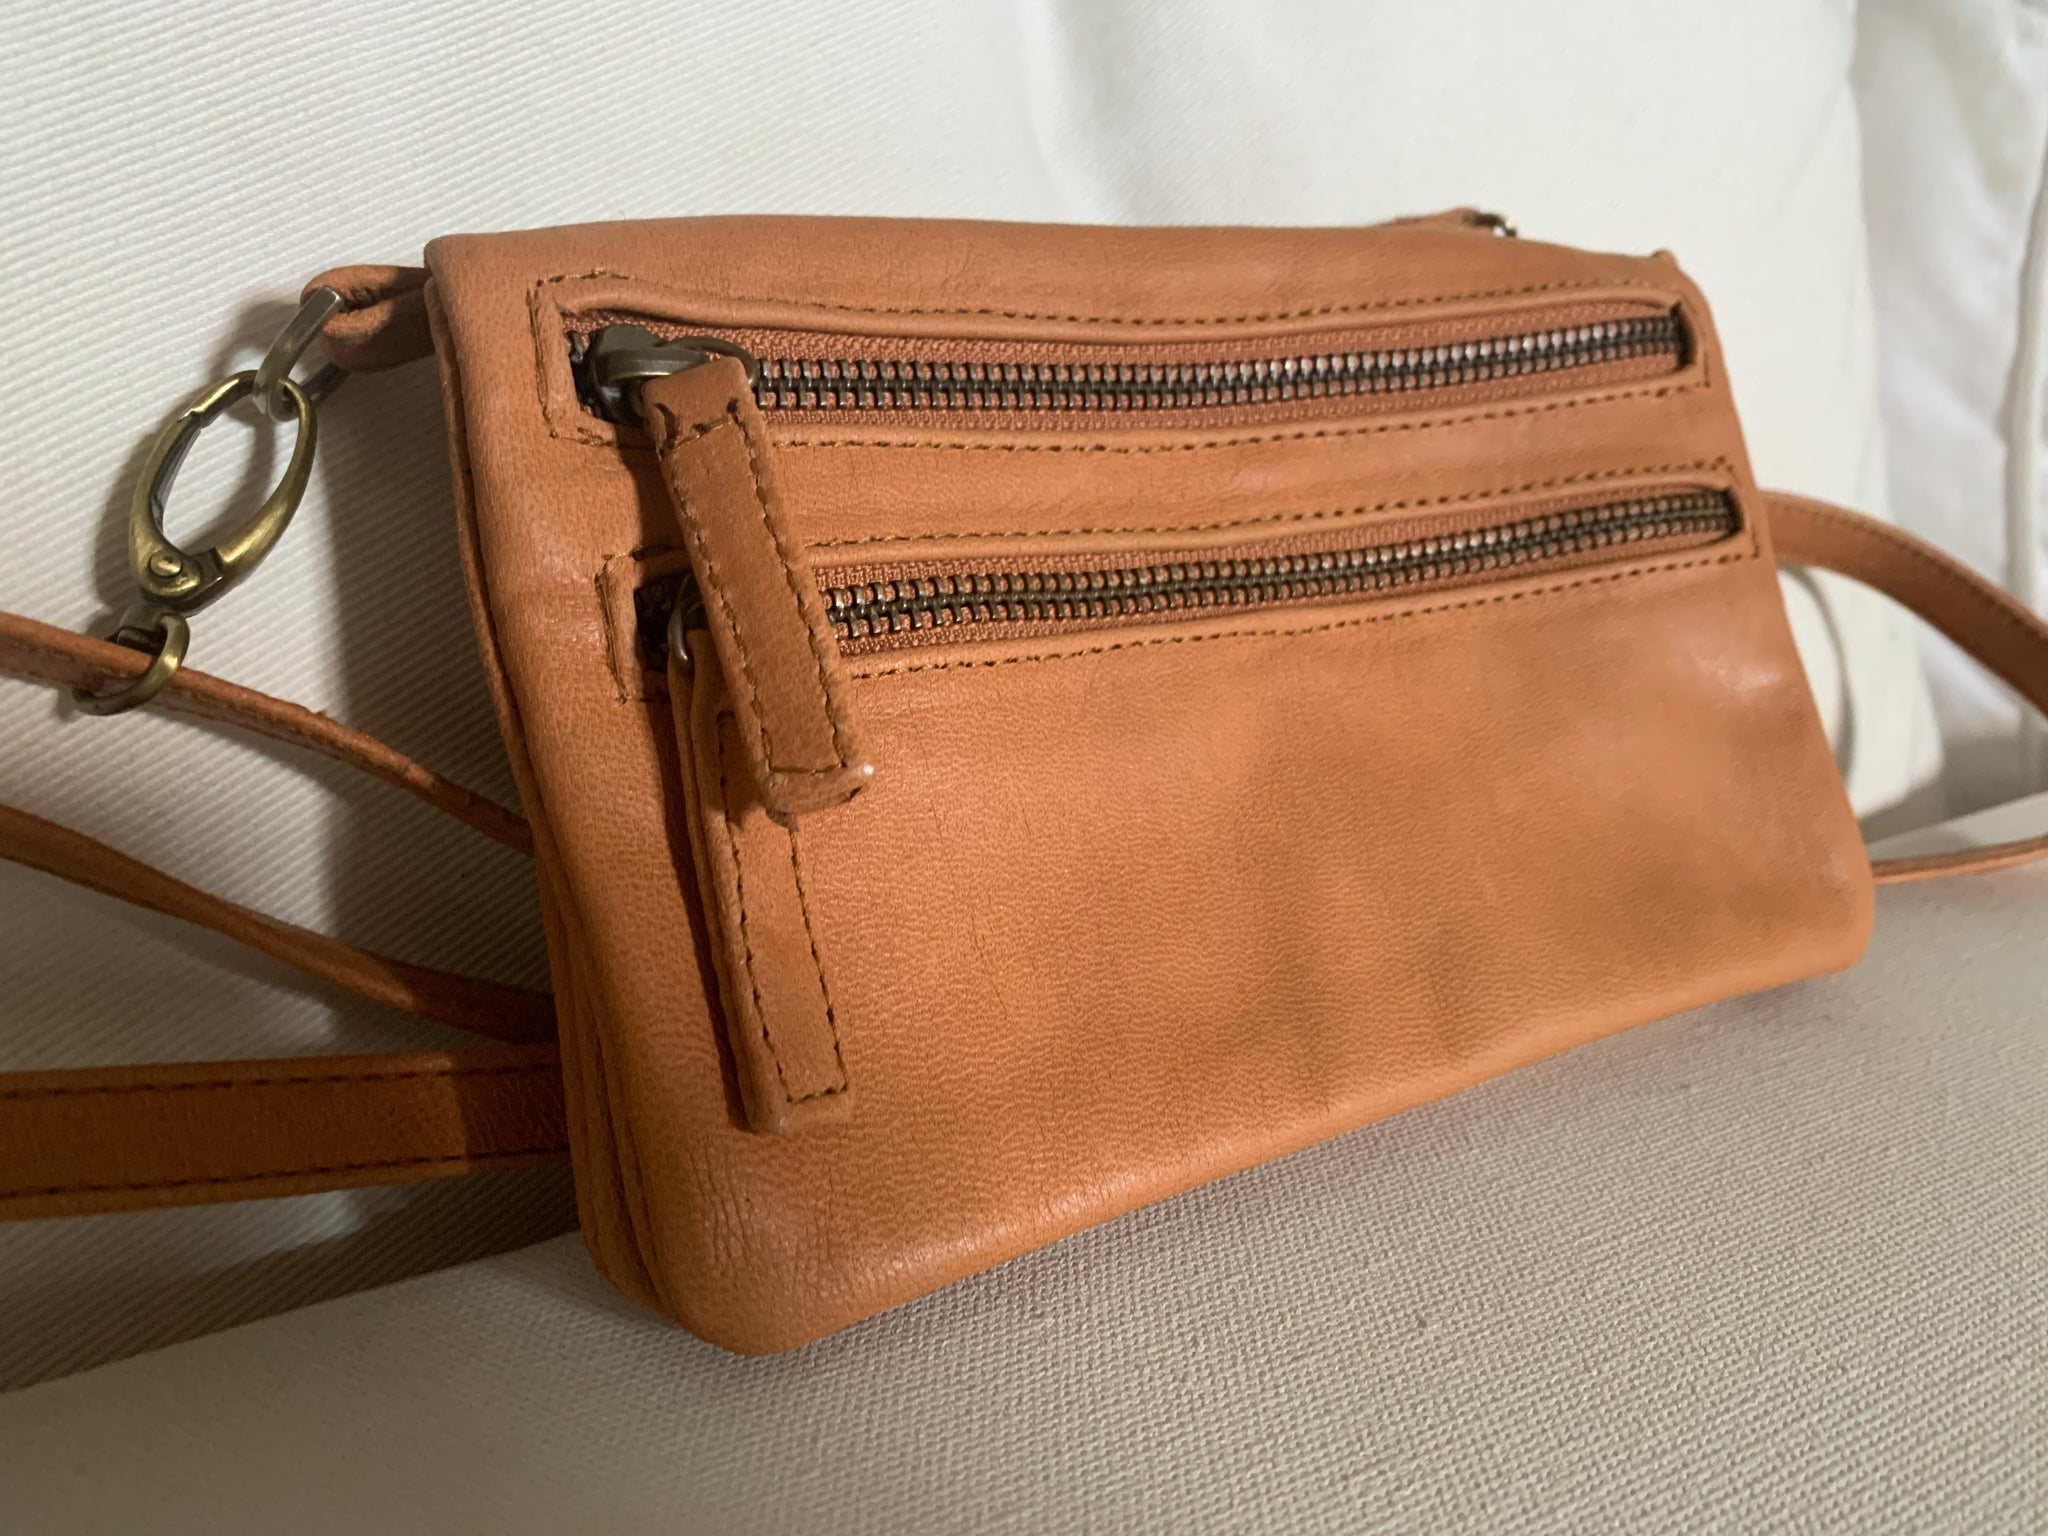 The Amazing Handy Handsfree Bag! Tan Cow Leather